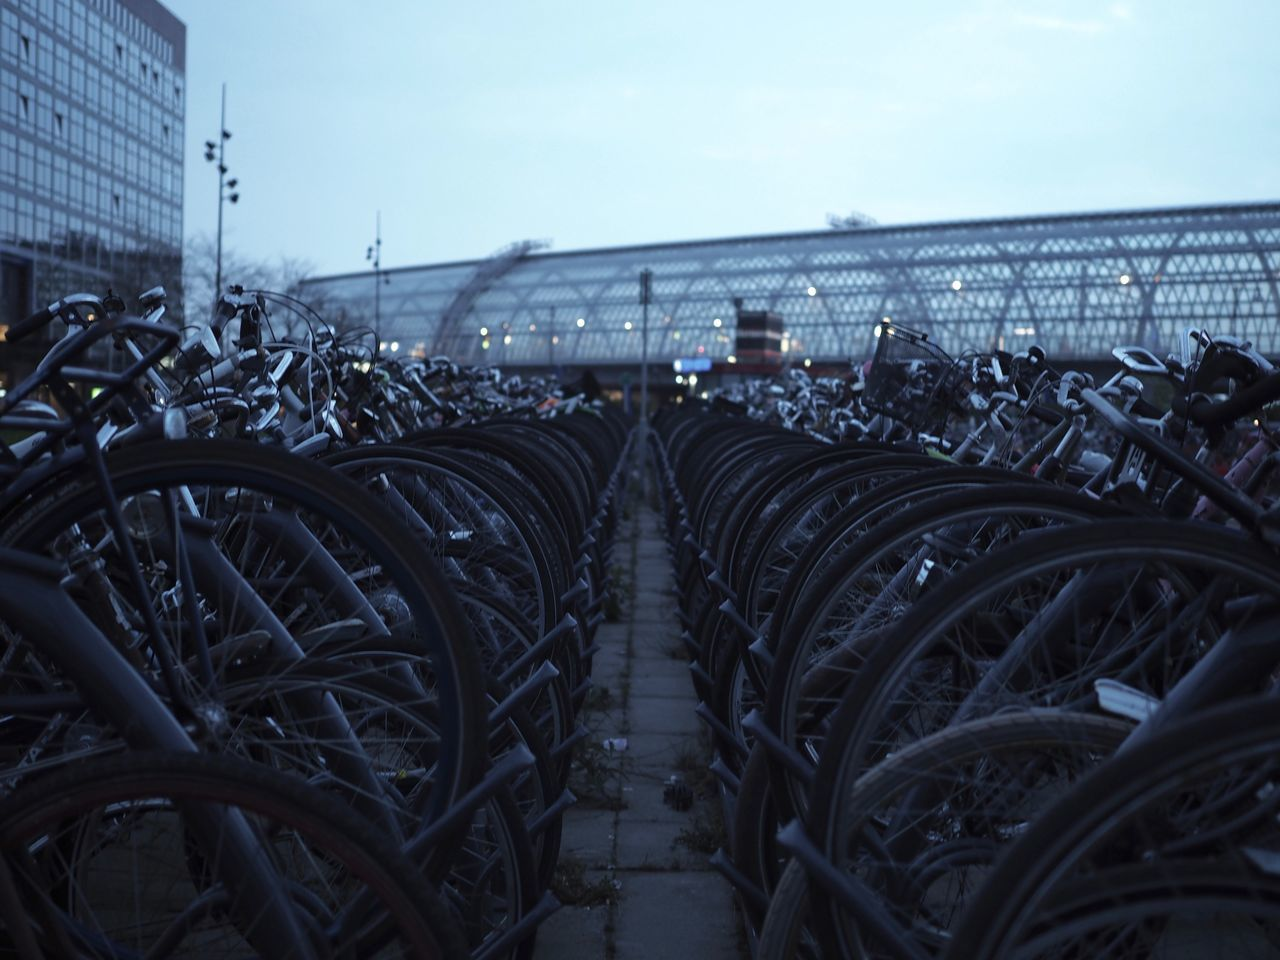 Bicycle Bicycle Rack Bike Bikes City Commuting Day In A Row No People Outdoors Parking Parking Lot Sky Train Station Transportation